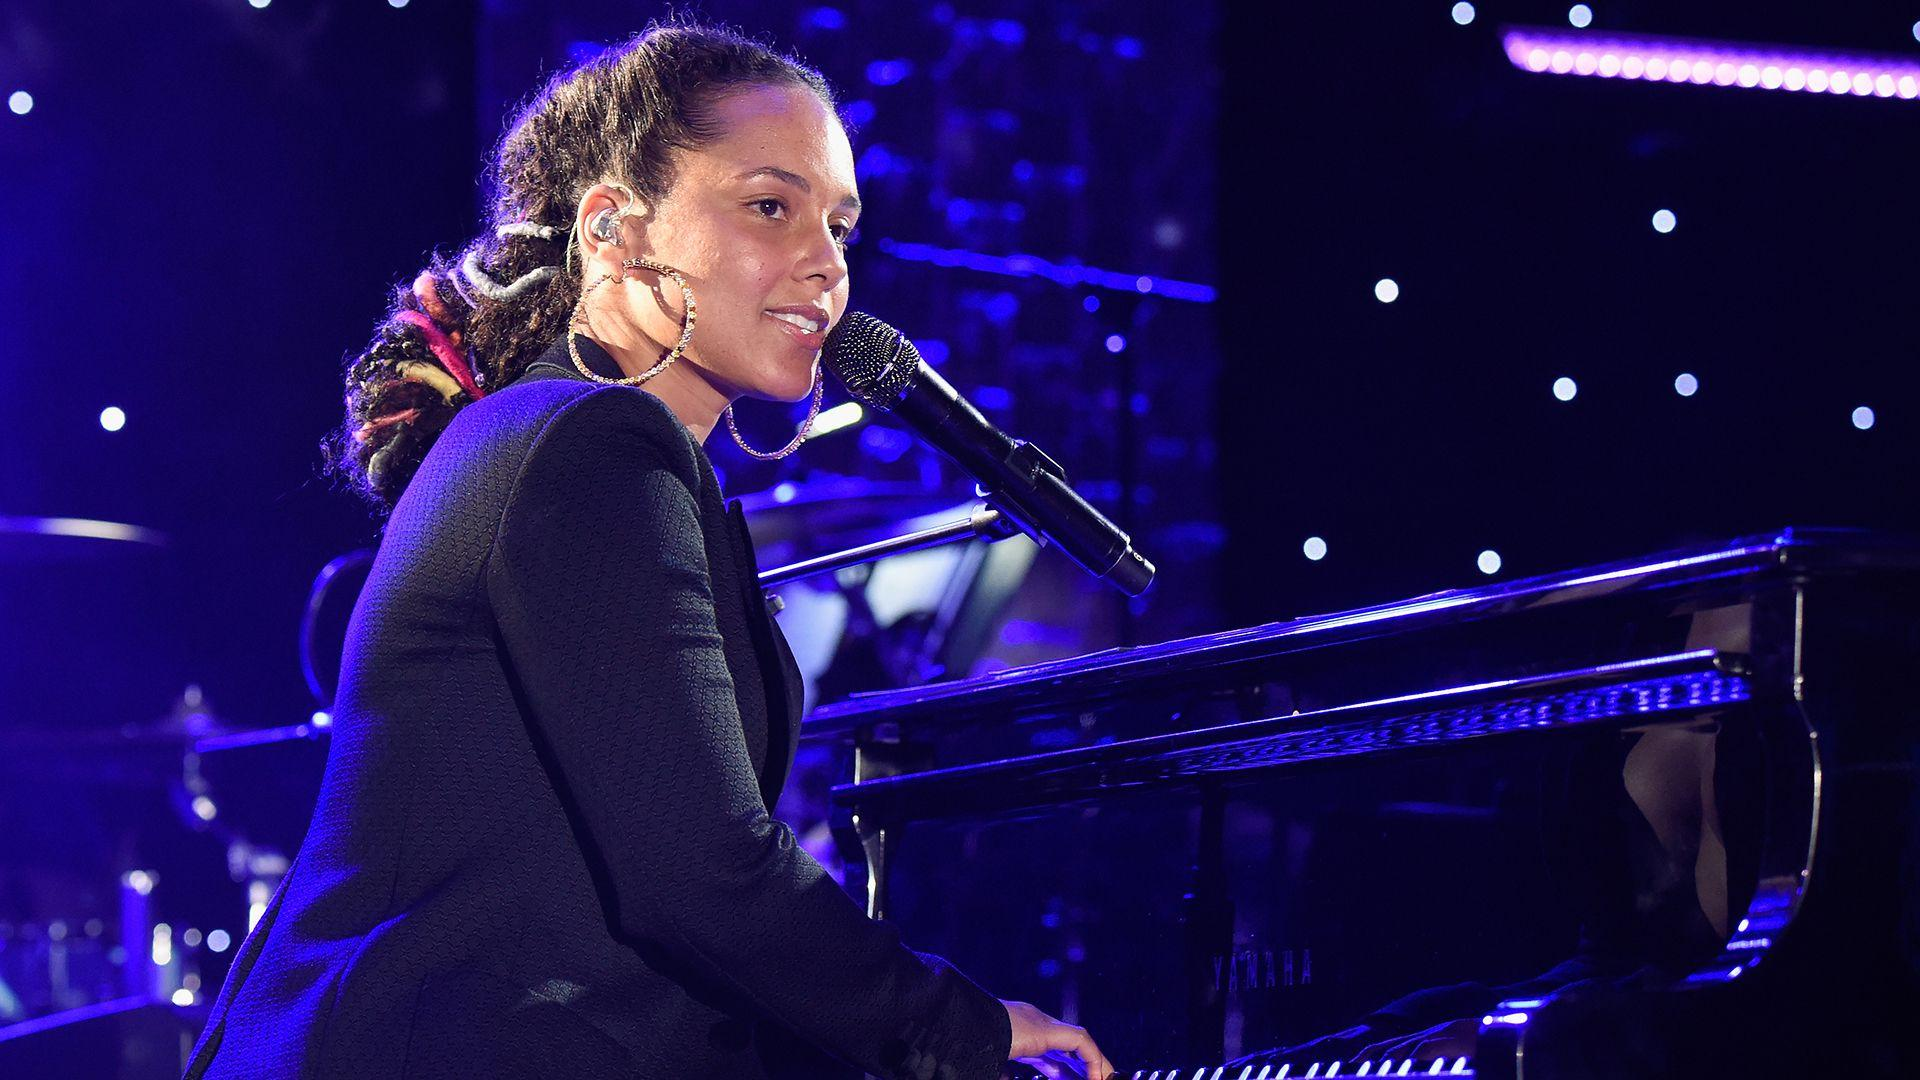 Grammys 2019 Host | Alicia Keys First Woman to Host Grammys in 14 ...